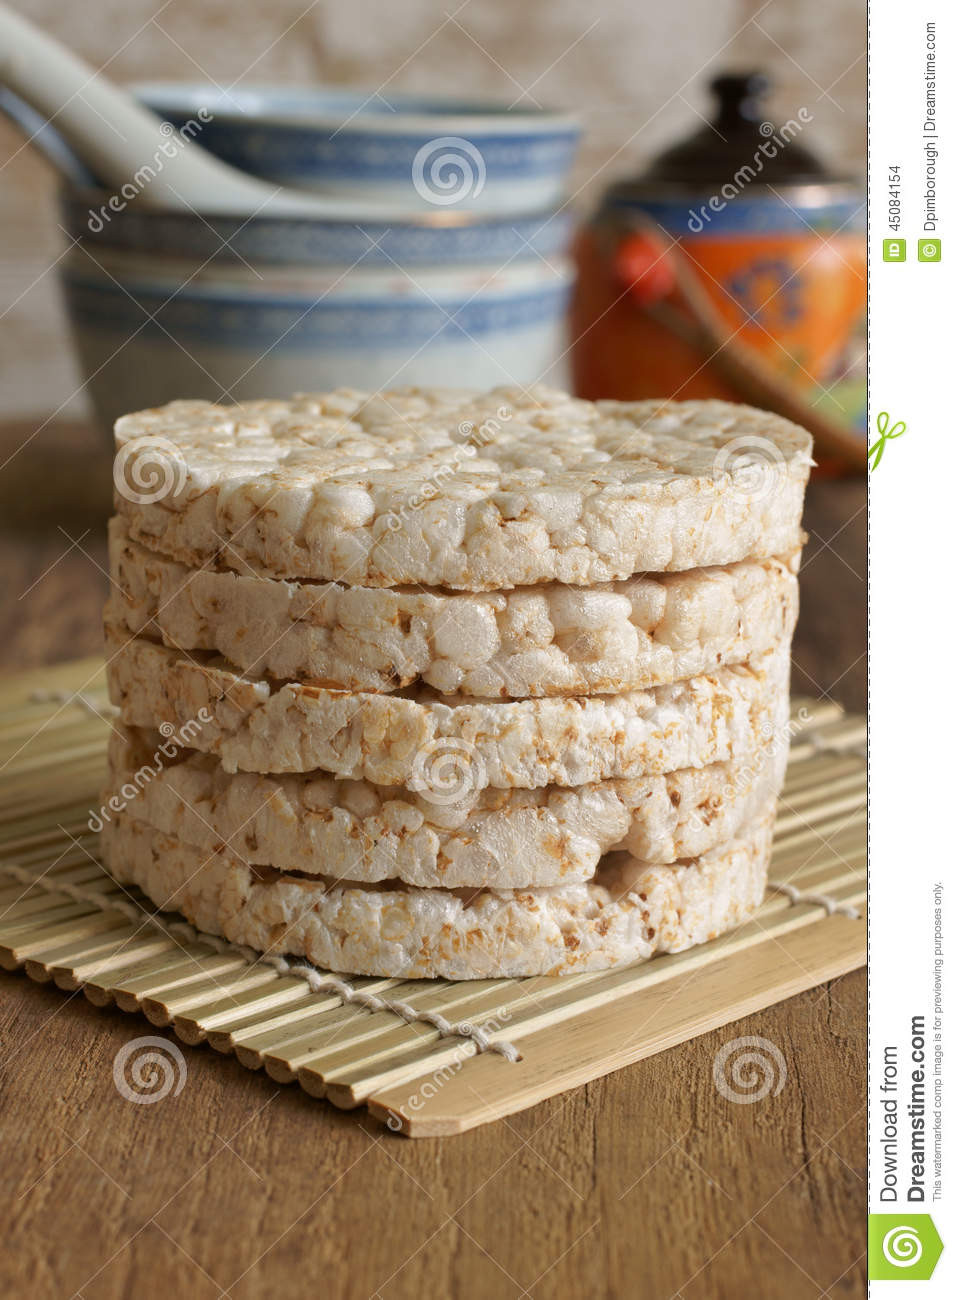 Healthy Alternative To Bread  Rice Cakes Stock Image